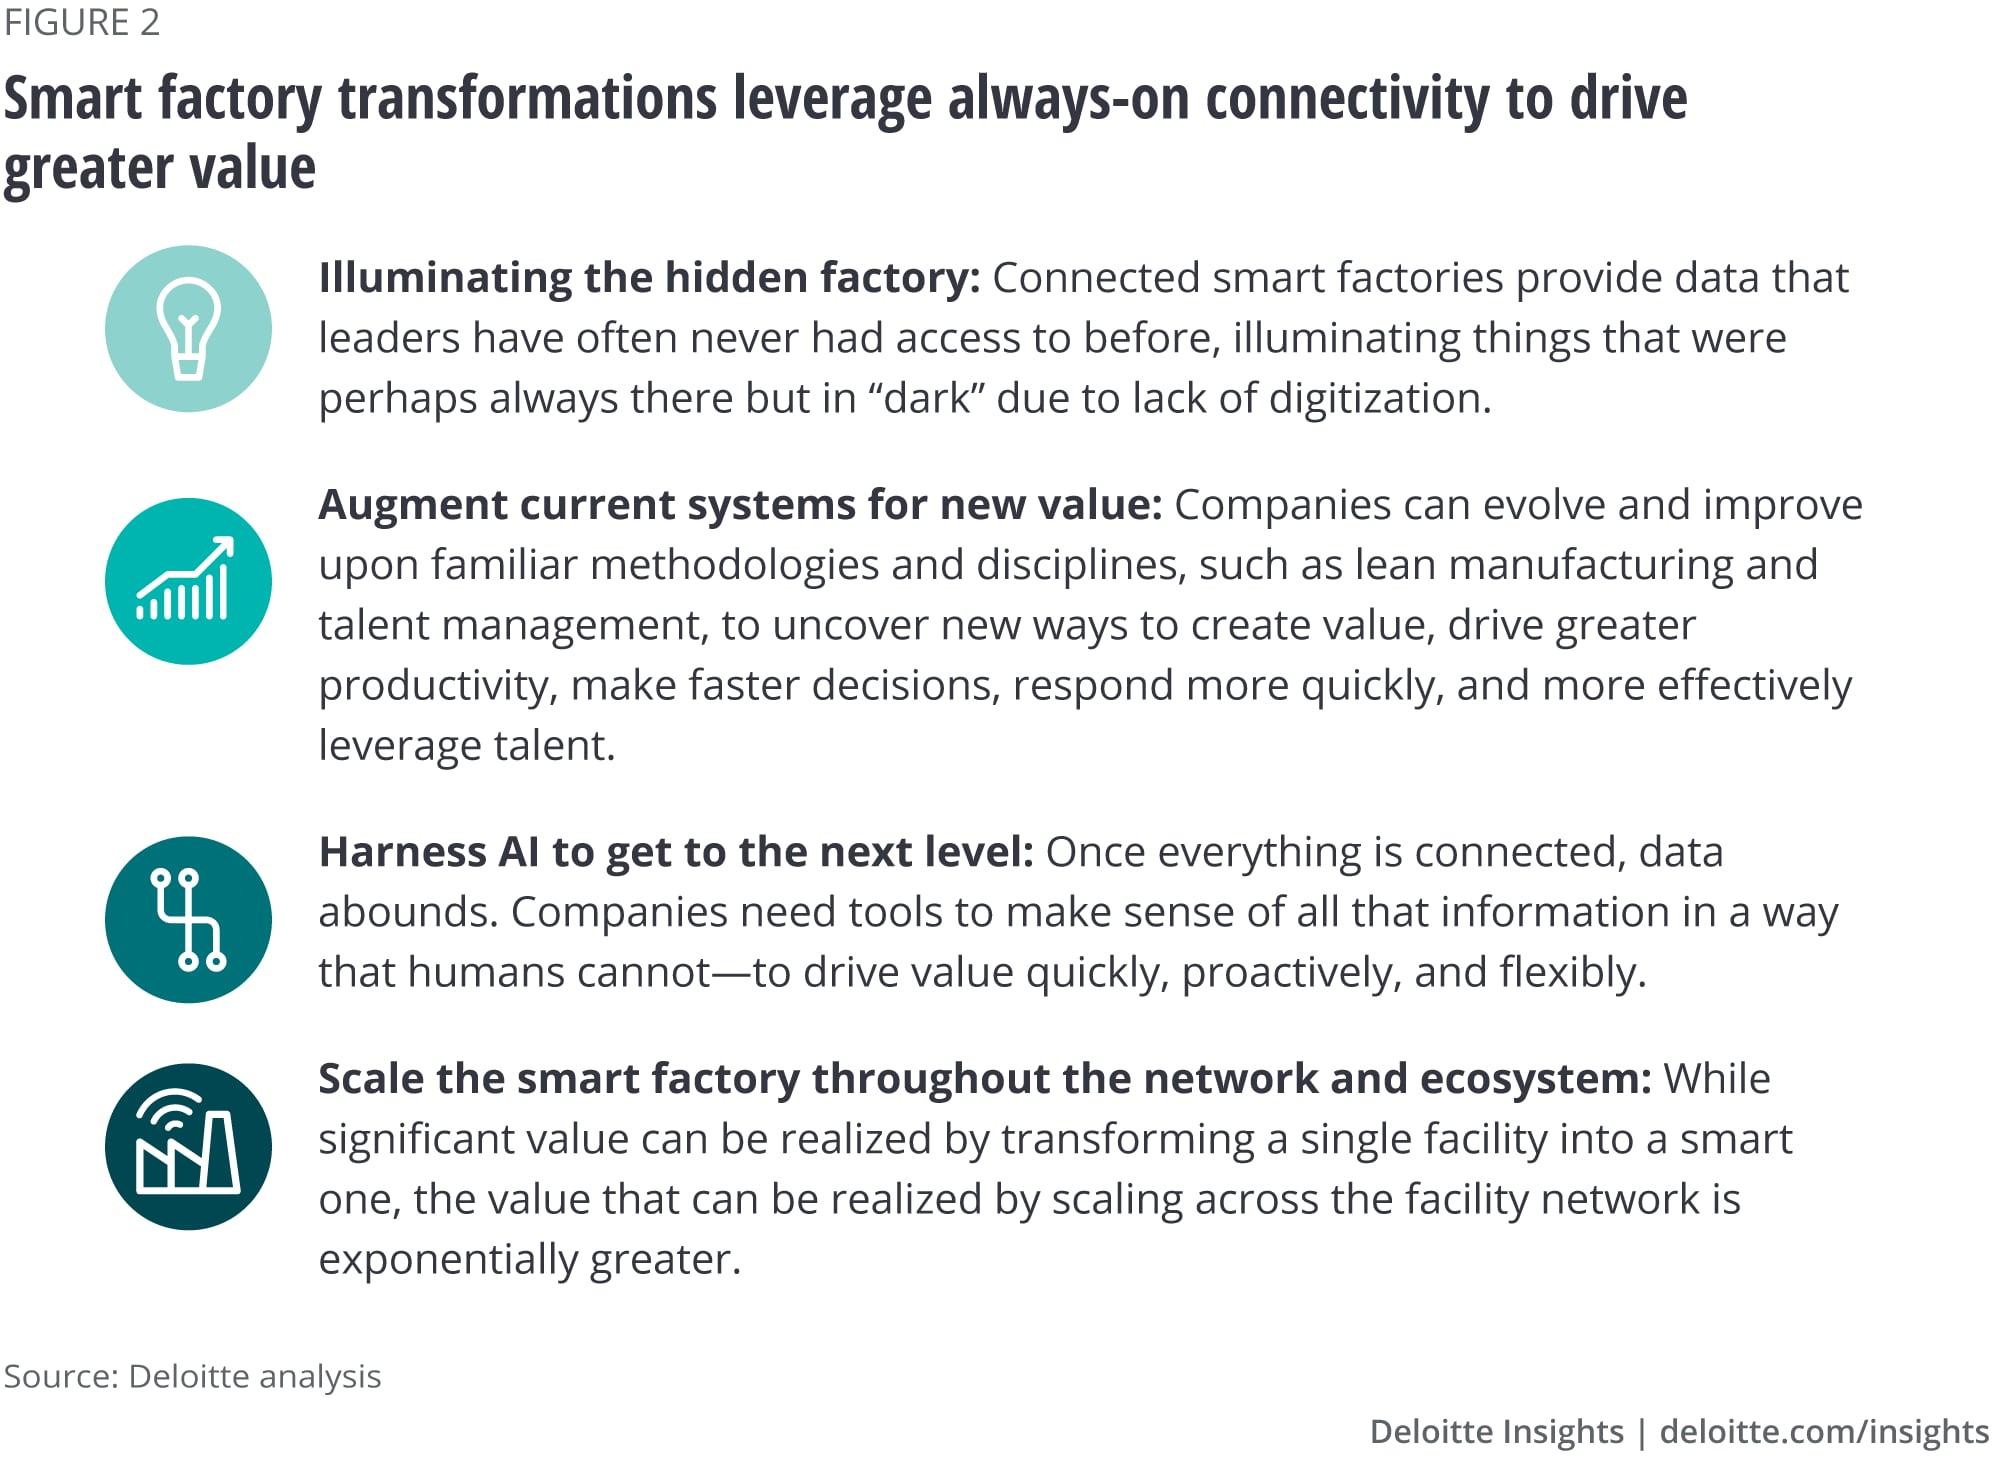 Smart factory transformations leverage always-on connectivity to drive greater value